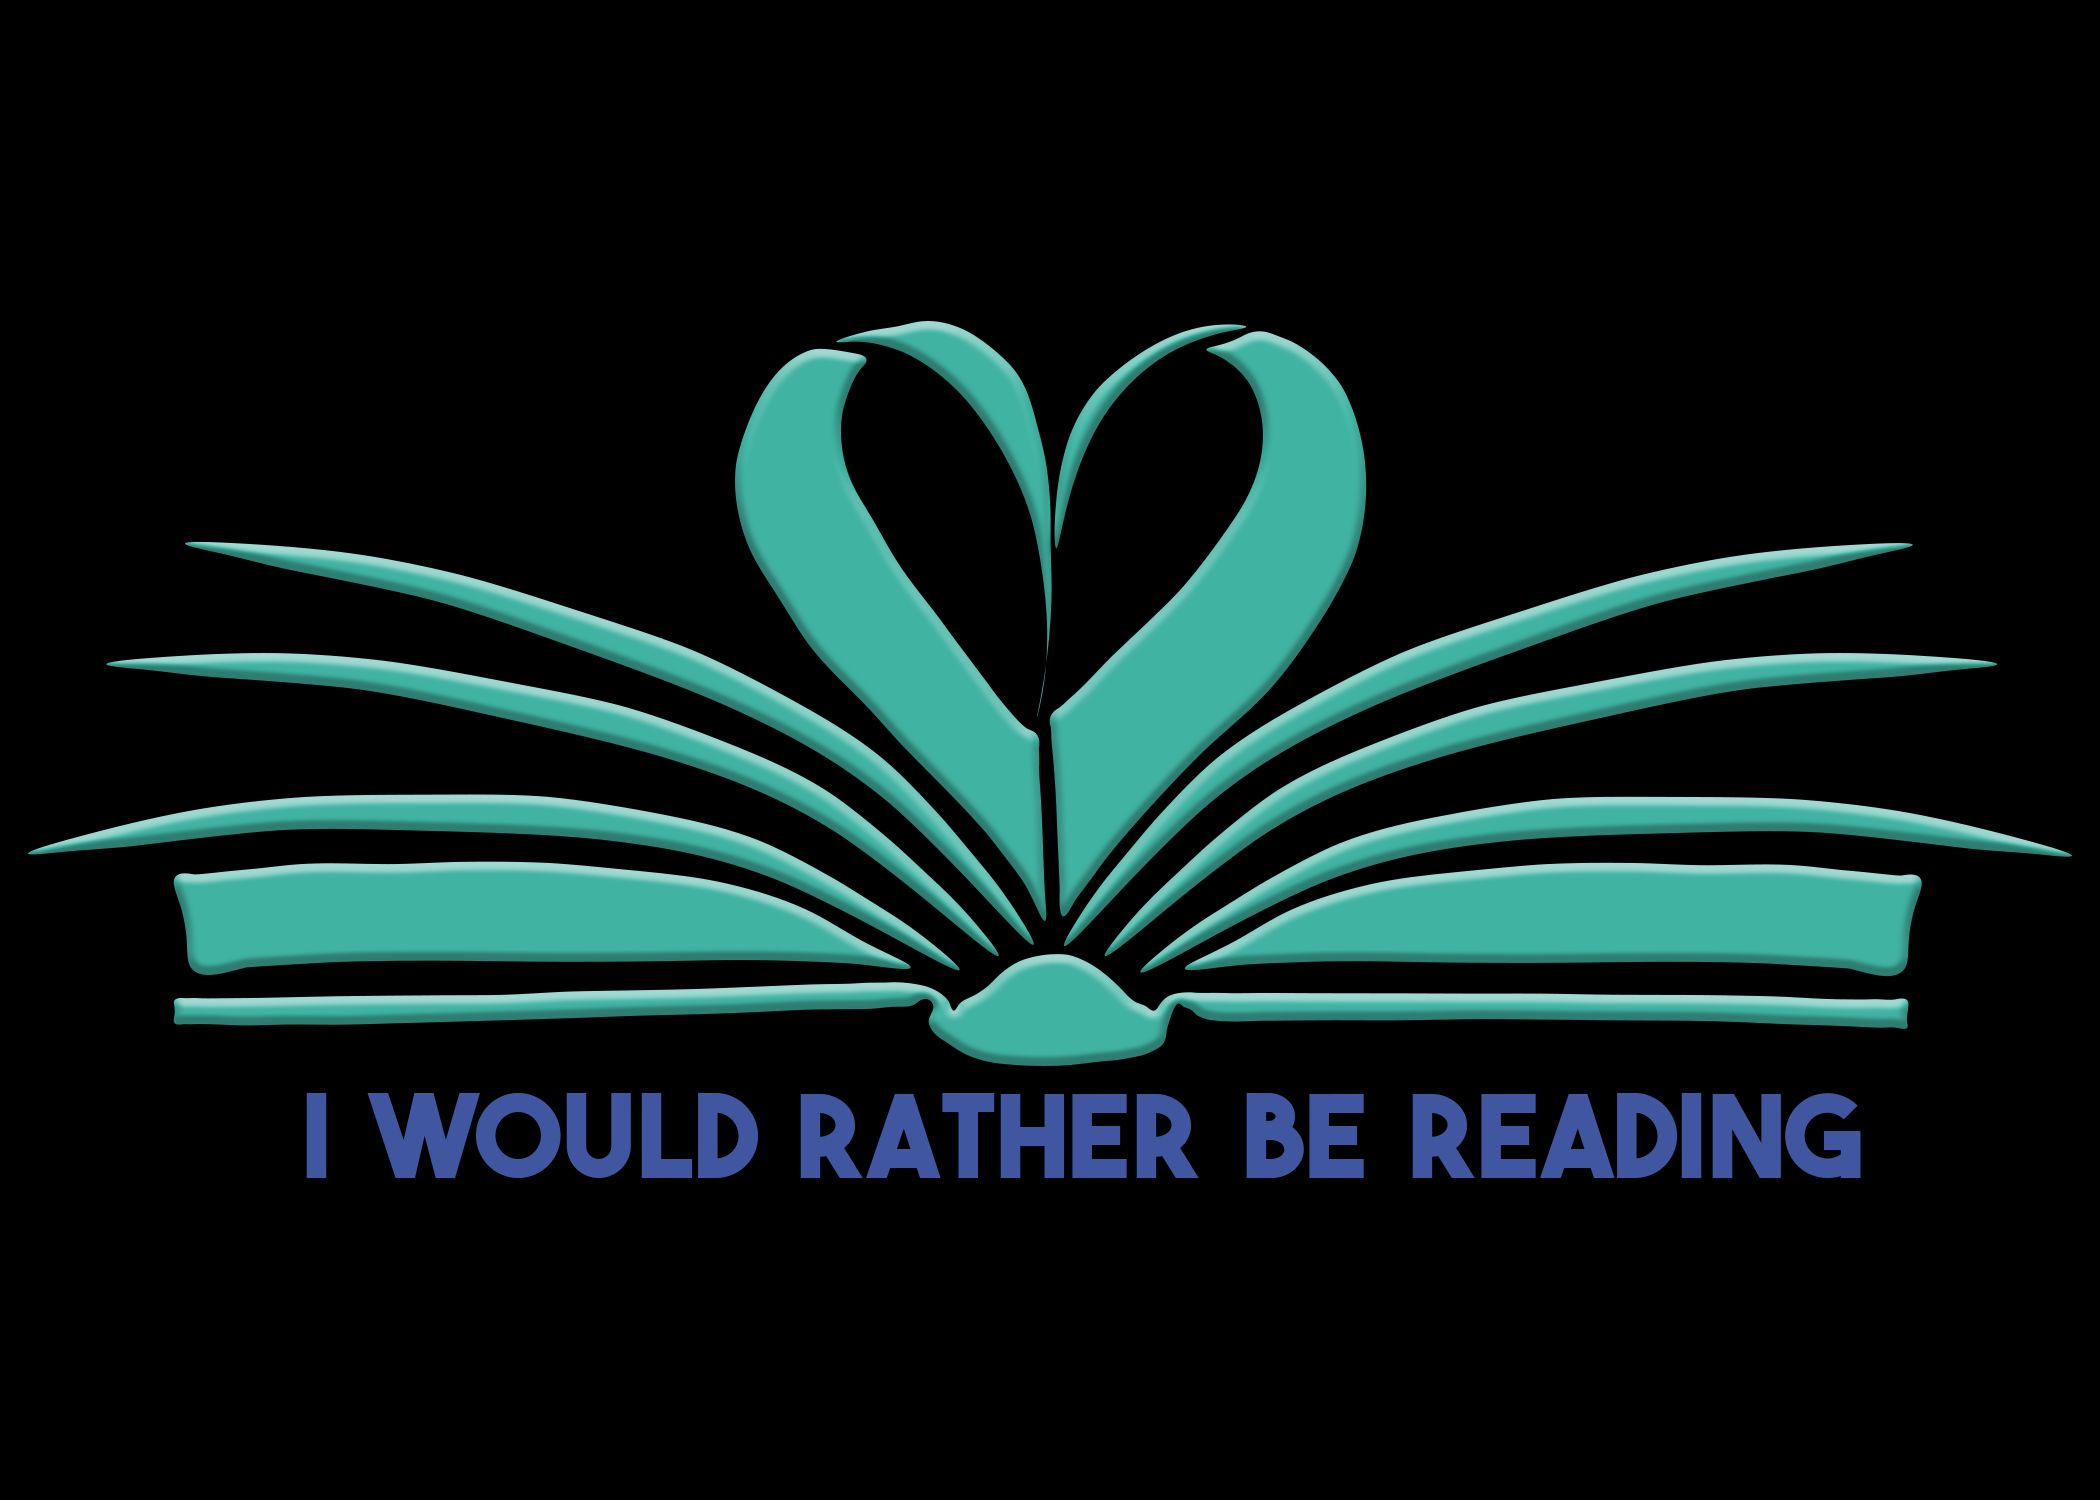 I would rather be reading logo  2